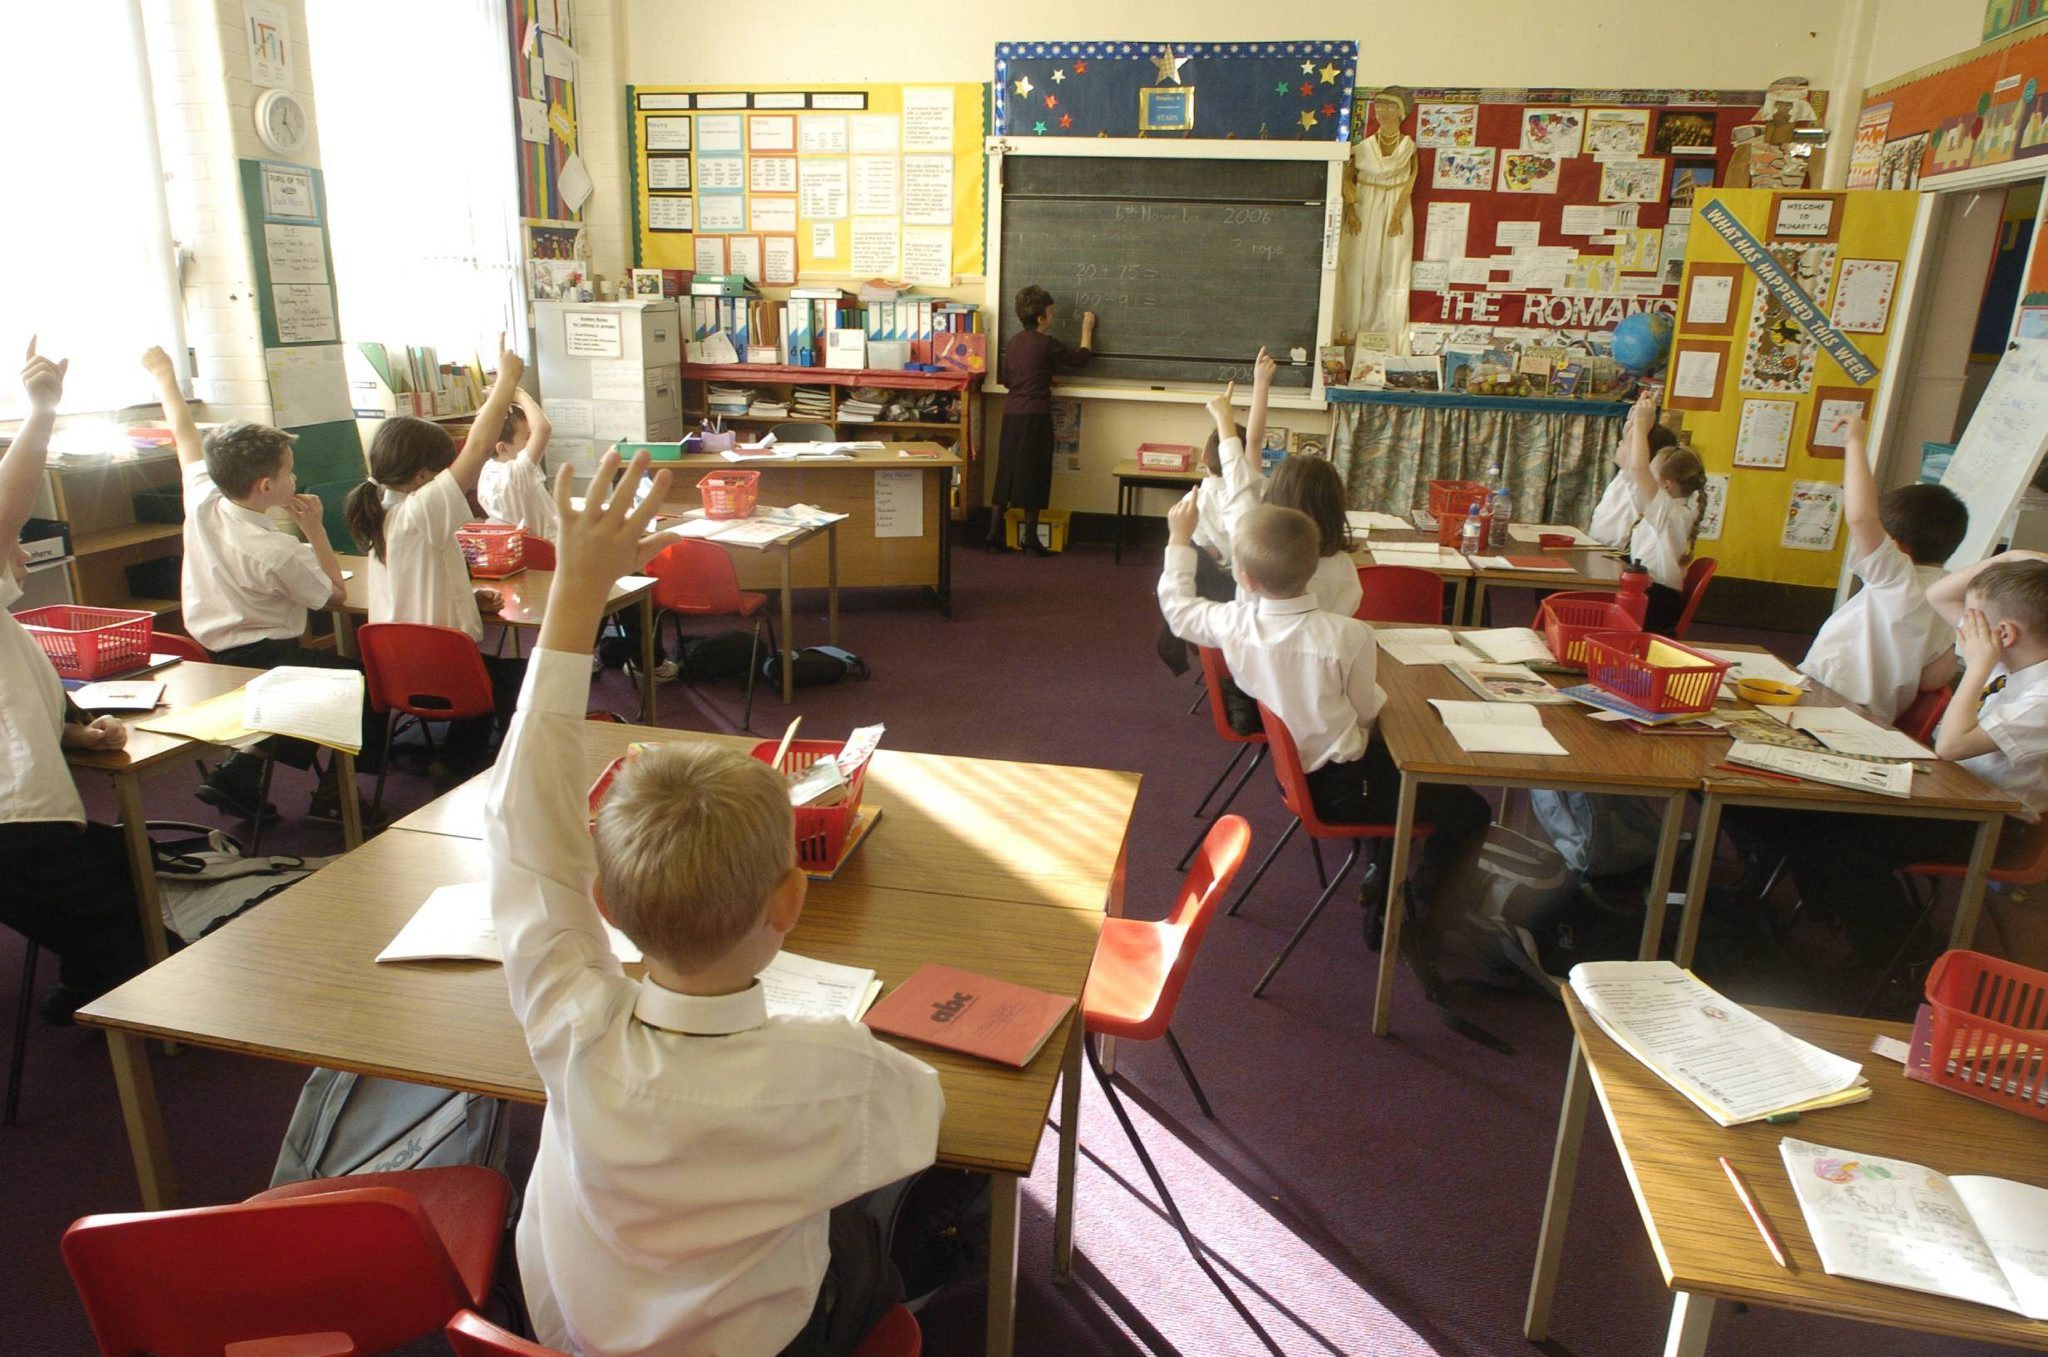 The Scottish Government is consulting on plans to replace the GTCS with a new Education Workforce Council with a wider remit